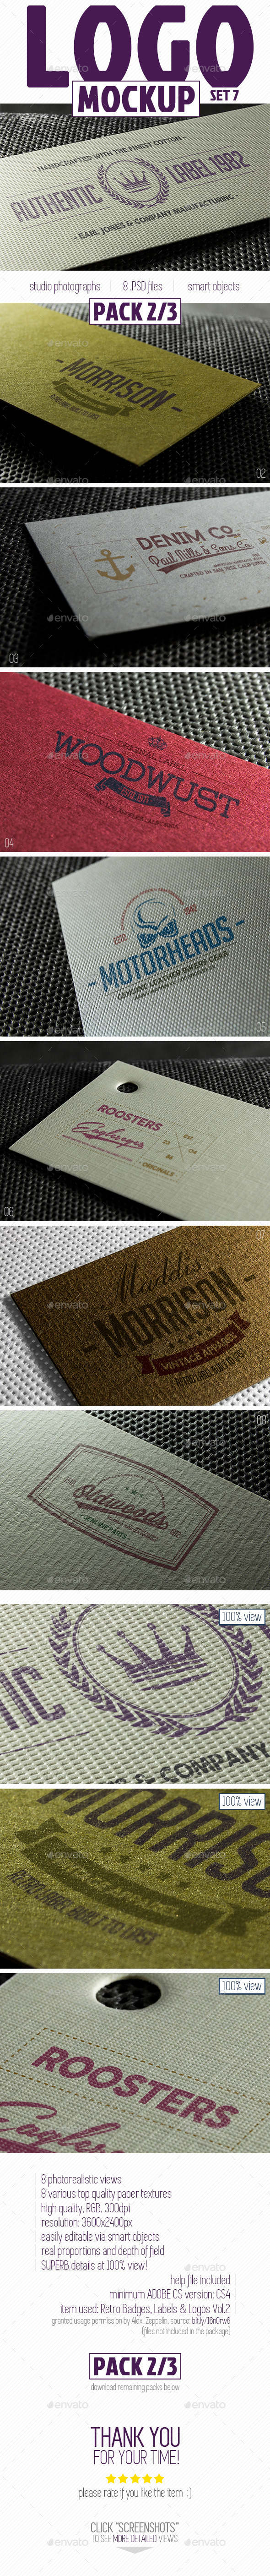 Complete Paper Logo Mock-Up pack 2 3